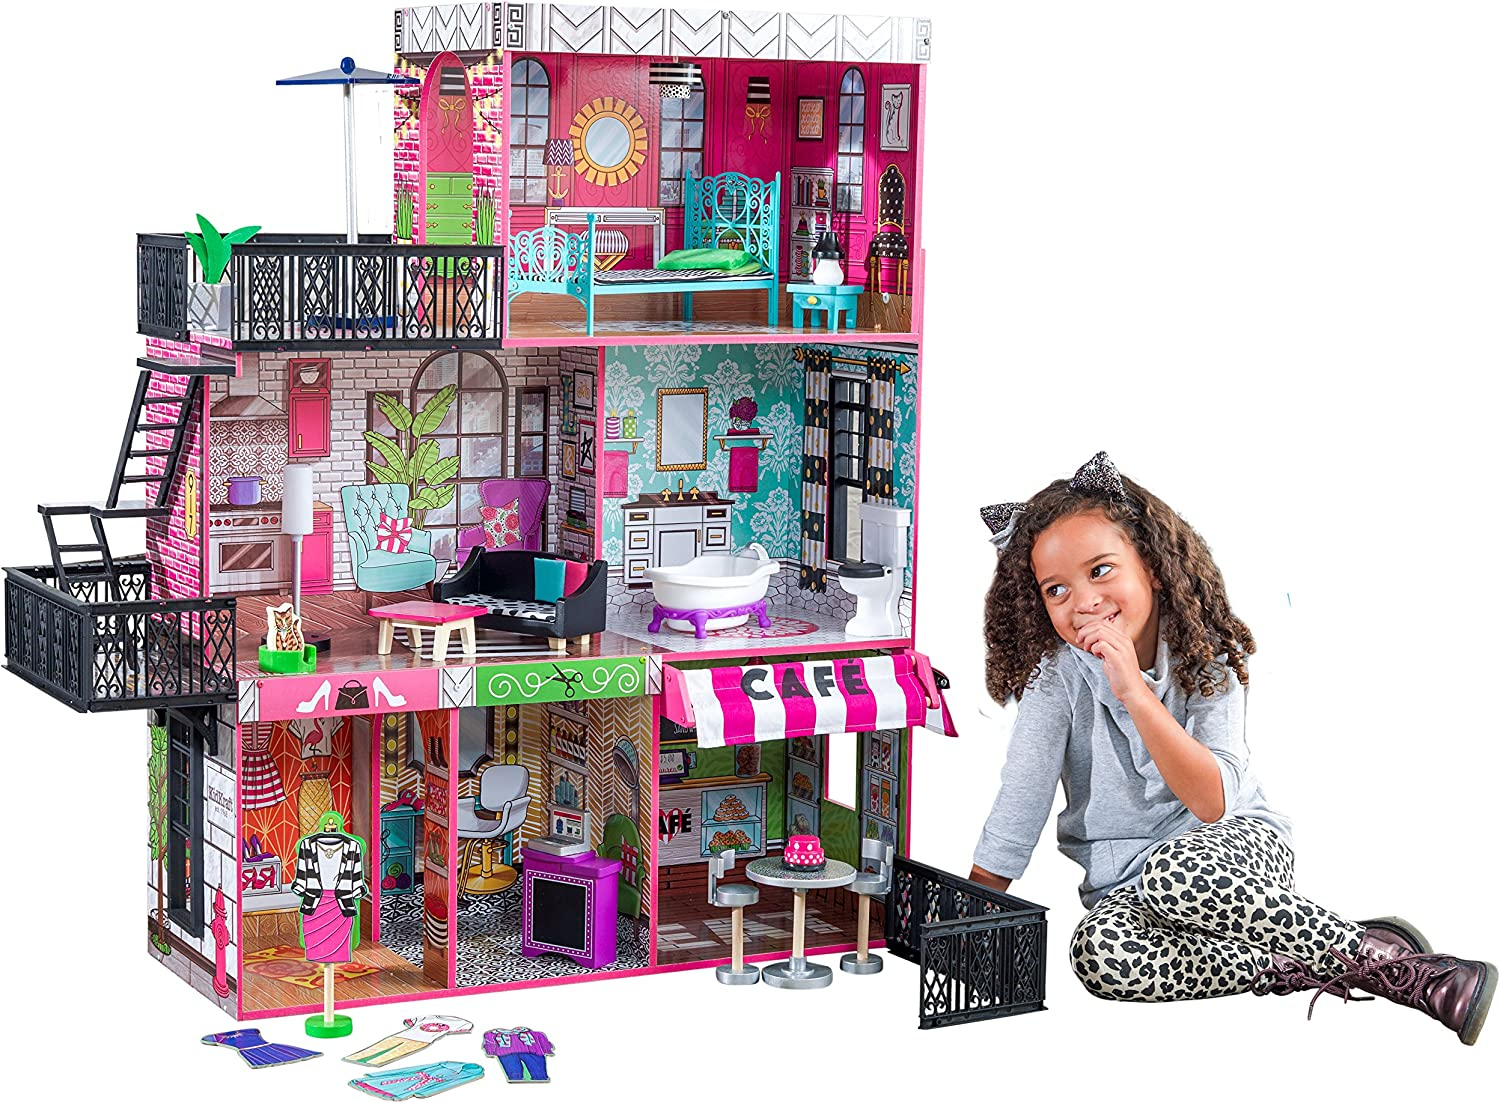 KidKraft 65922 Brooklyn's Loft wooden Dollhouse with 3 levels of play and 25 accessories included